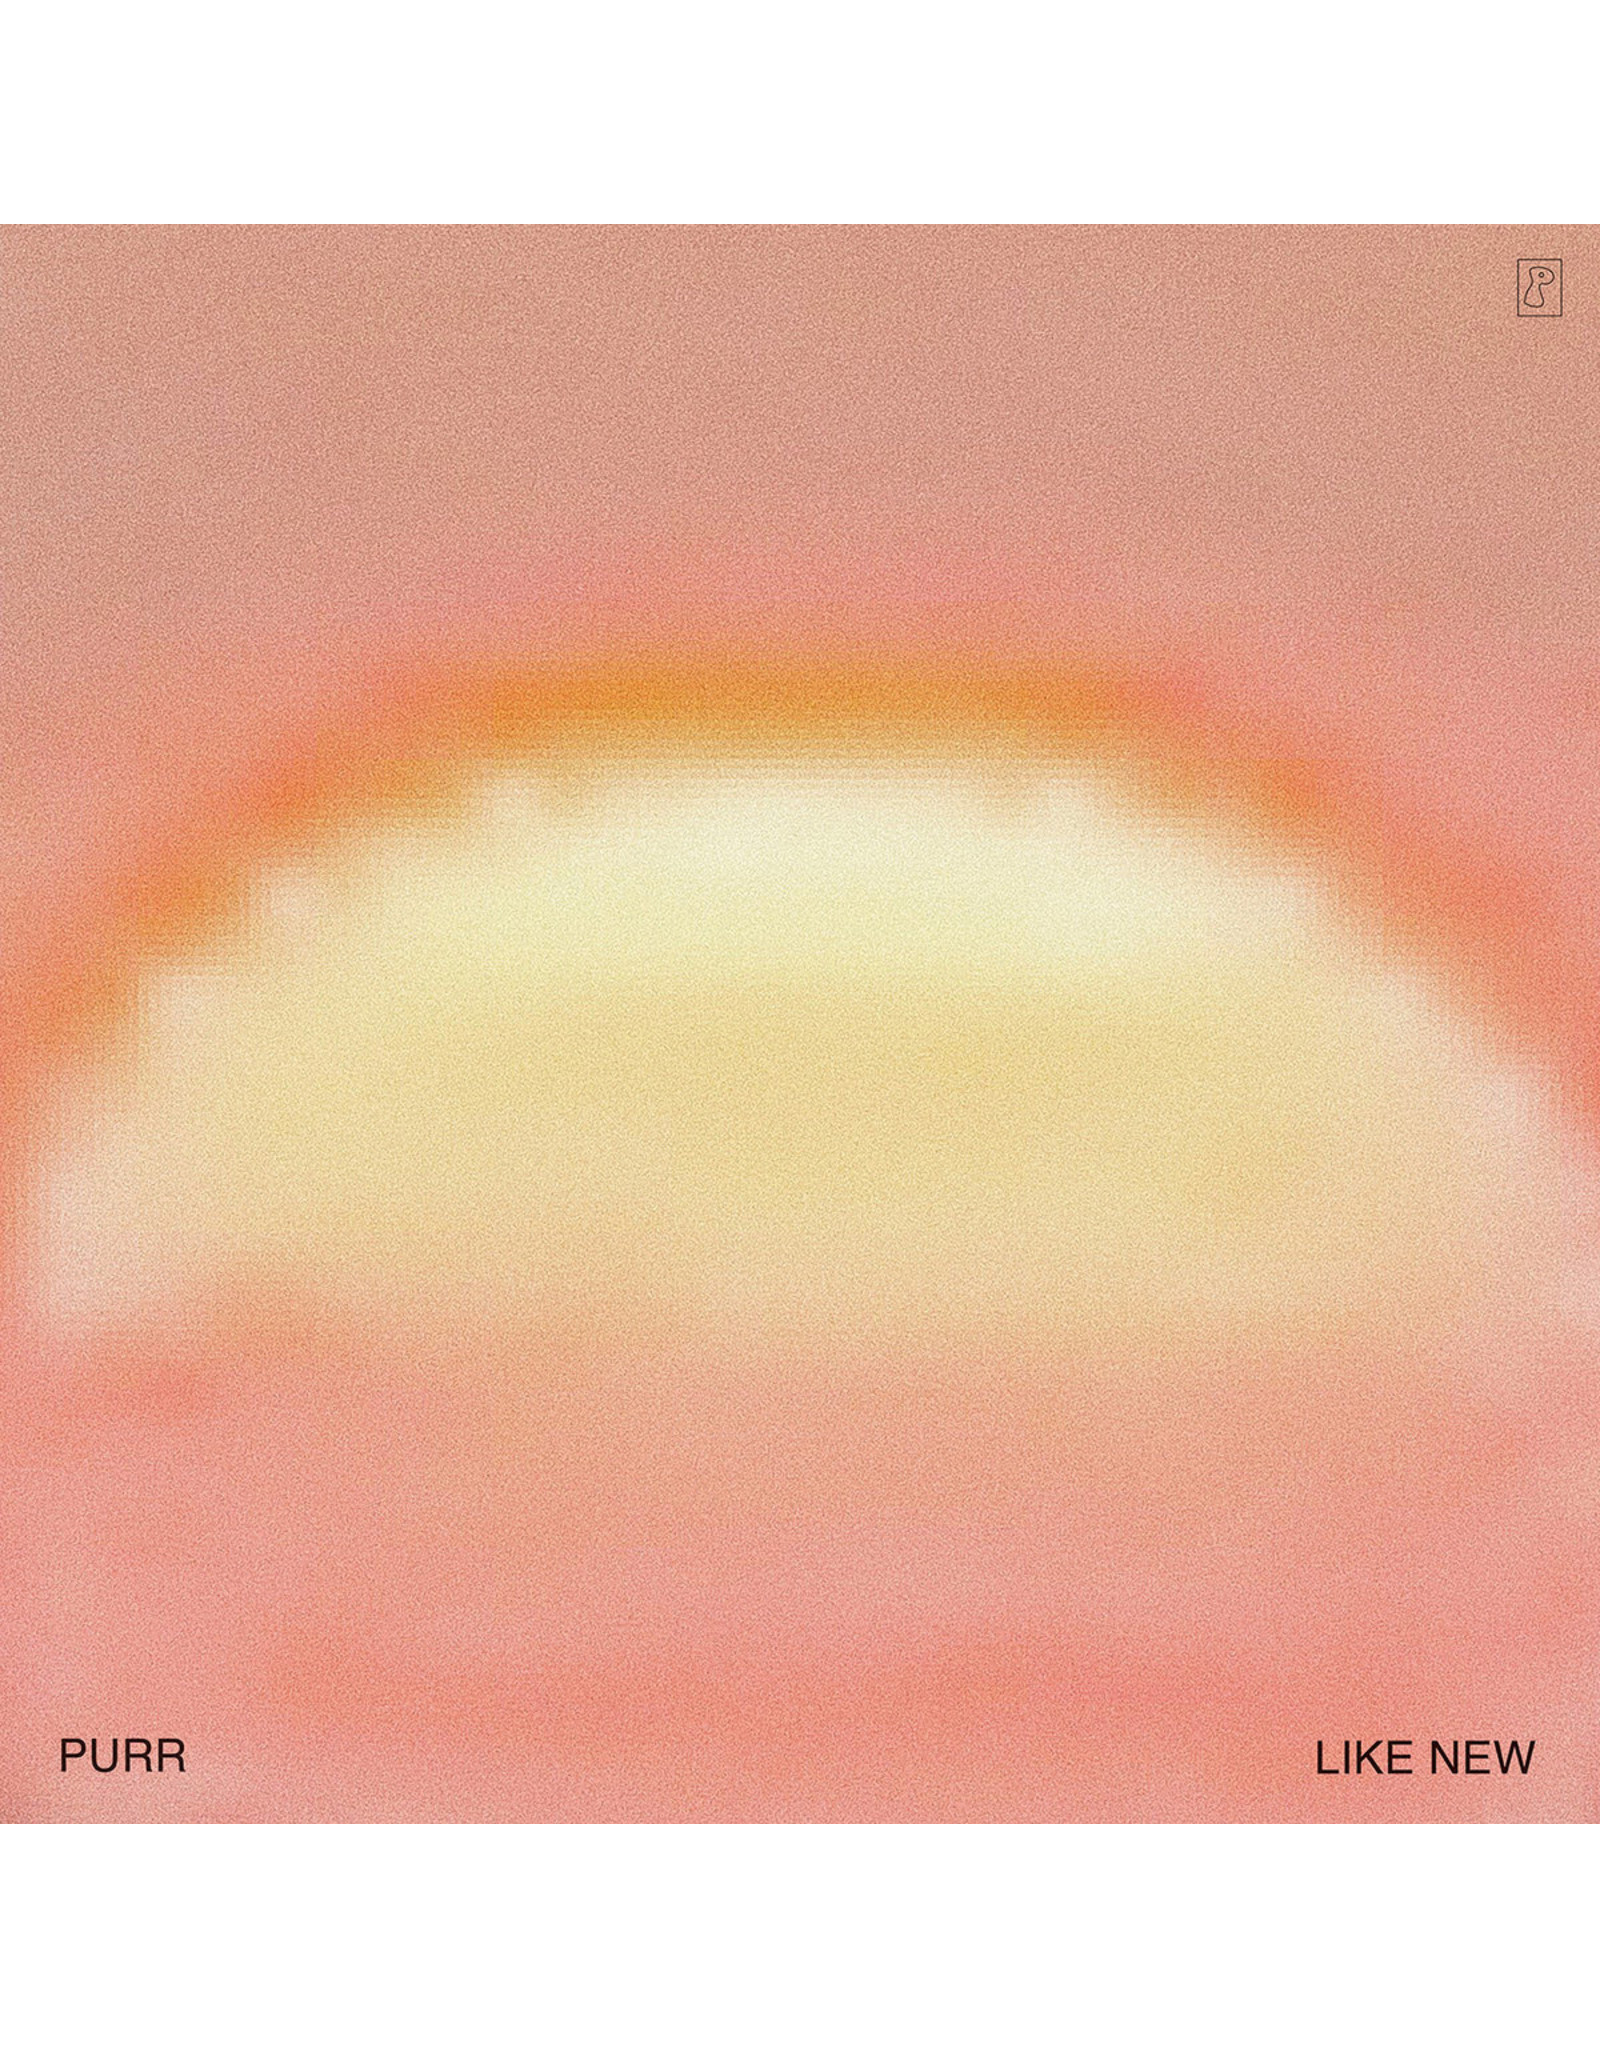 Purr - Like New LP